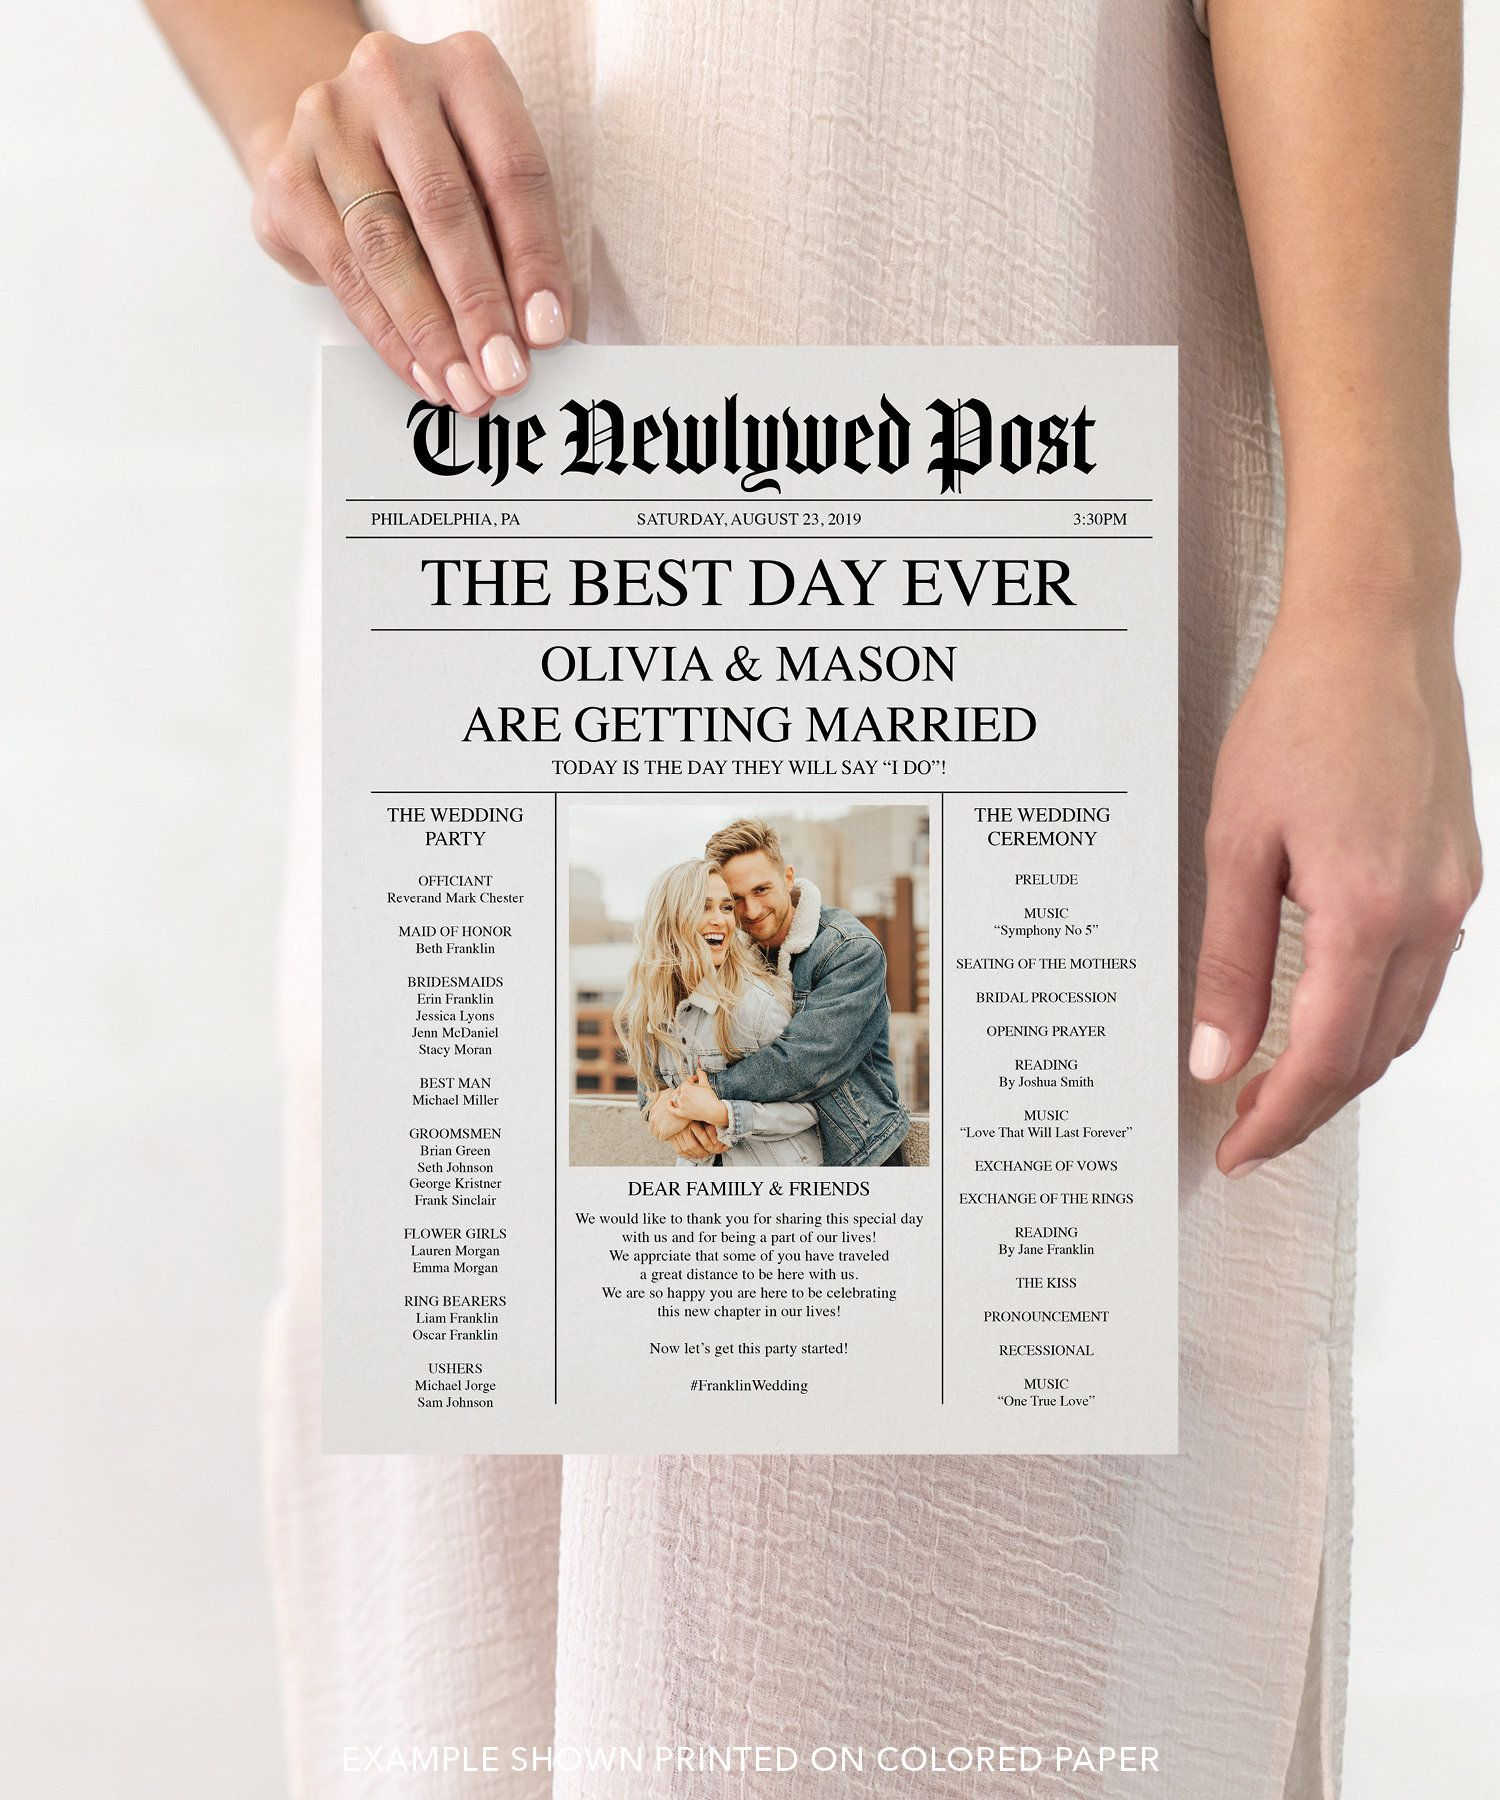 "What a fun and unique way for your guests to ""read all about it!"" Just download and edit this newspaper program yourself! • • • • • RECOMMENDED PAPER • • • • •  Parchment Specialty Paper: https://amzn.to/2Wr7hf4 • • • • • DOWNLOAD • • • • •  You will need Adobe Reader to edit these files.  Don't worry - it's free! https://get.adobe.com/reader/ • • • • • HOW IT WORKS • • • • •  1. Open the PDF in Adobe Reader 2. Fill out the highlighted areas with your information 3. Save and print on white paper or colored paper to give it a vintage look 4. Take in all the compliments as your guests adore the lovely details of your wedding! *Please see example in listing for editable areas.  • • • • • HOW TO EDIT • • • • • To edit the font size, style and color: Open the text edit panel by pressing Command-E (Mac) or Ctrl-E (PC) • • • • • FILE INFORMATION• • • • •  - Measures 8.5x11 and will print onto a standard sheet of paper - A4 (UK/AUS) Size included! - This program is double sided - You will receive 1 high resolution PDF that includes 2 pages (front and back) • • • • • NEED HELP • • • • •  We can lay this out for you! Just purchase this program and add on our $15 change listing - and please leave all the info in the ""note to seller"" section at check out: https://www.etsy.com/listing/218692353/custom-design?ref=shop_home_active_58 You can email the photo to: Roberta@CreativeUnionDesign.com • • • • • QUESTIONS? • • • • •  Feel free to send us a message, we usually respond within a few hours! • • • • • MORE IDEAS & INSPIRATION • • • • •  Blog: www.creativeuniondesign.com/ Instagram: @creativeuniondesign Pinterest: pinterest.com/Creative_Union/ Facebook: search: Creative Union Design YouTube: YouTube.com/CreativeUnionDesign To edit PDFs: Download to a computer and use Adobe Reader DC. Not recommended to be edited on a mobile device. All designs and layouts from Creative Union Design© are not to be duplicated or used for commercial use. Recommend items can contain affiliate link. Please watch our ""How to edit a PDF"" video: https://youtu.be/5qyyPEH7TGQ"